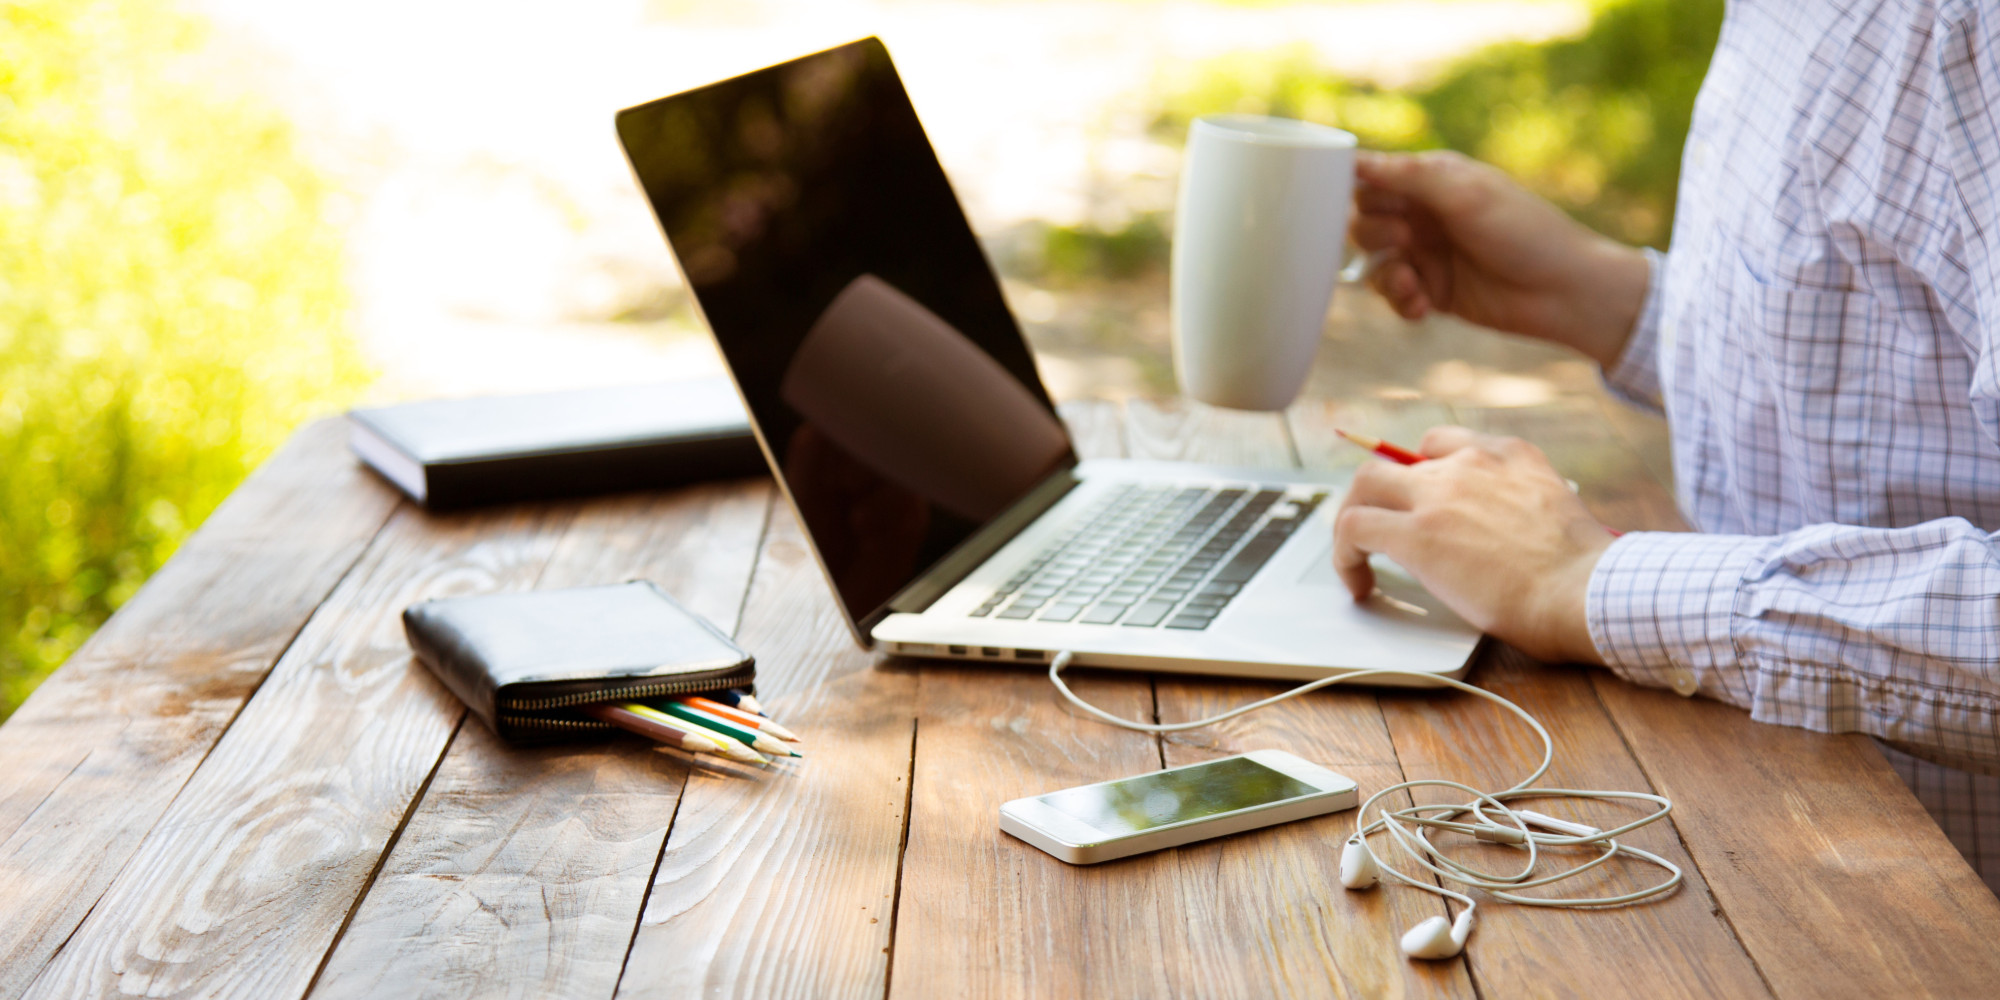 the pros and cons of telecommuting The home office: pros and cons of telecommuting december 5, 2017 close your eyes and envision your morning commute: the bumper-to-bumper traffic, the honking, and all of the wasted minutes spent listening to a mediocre morning radio talk-show.